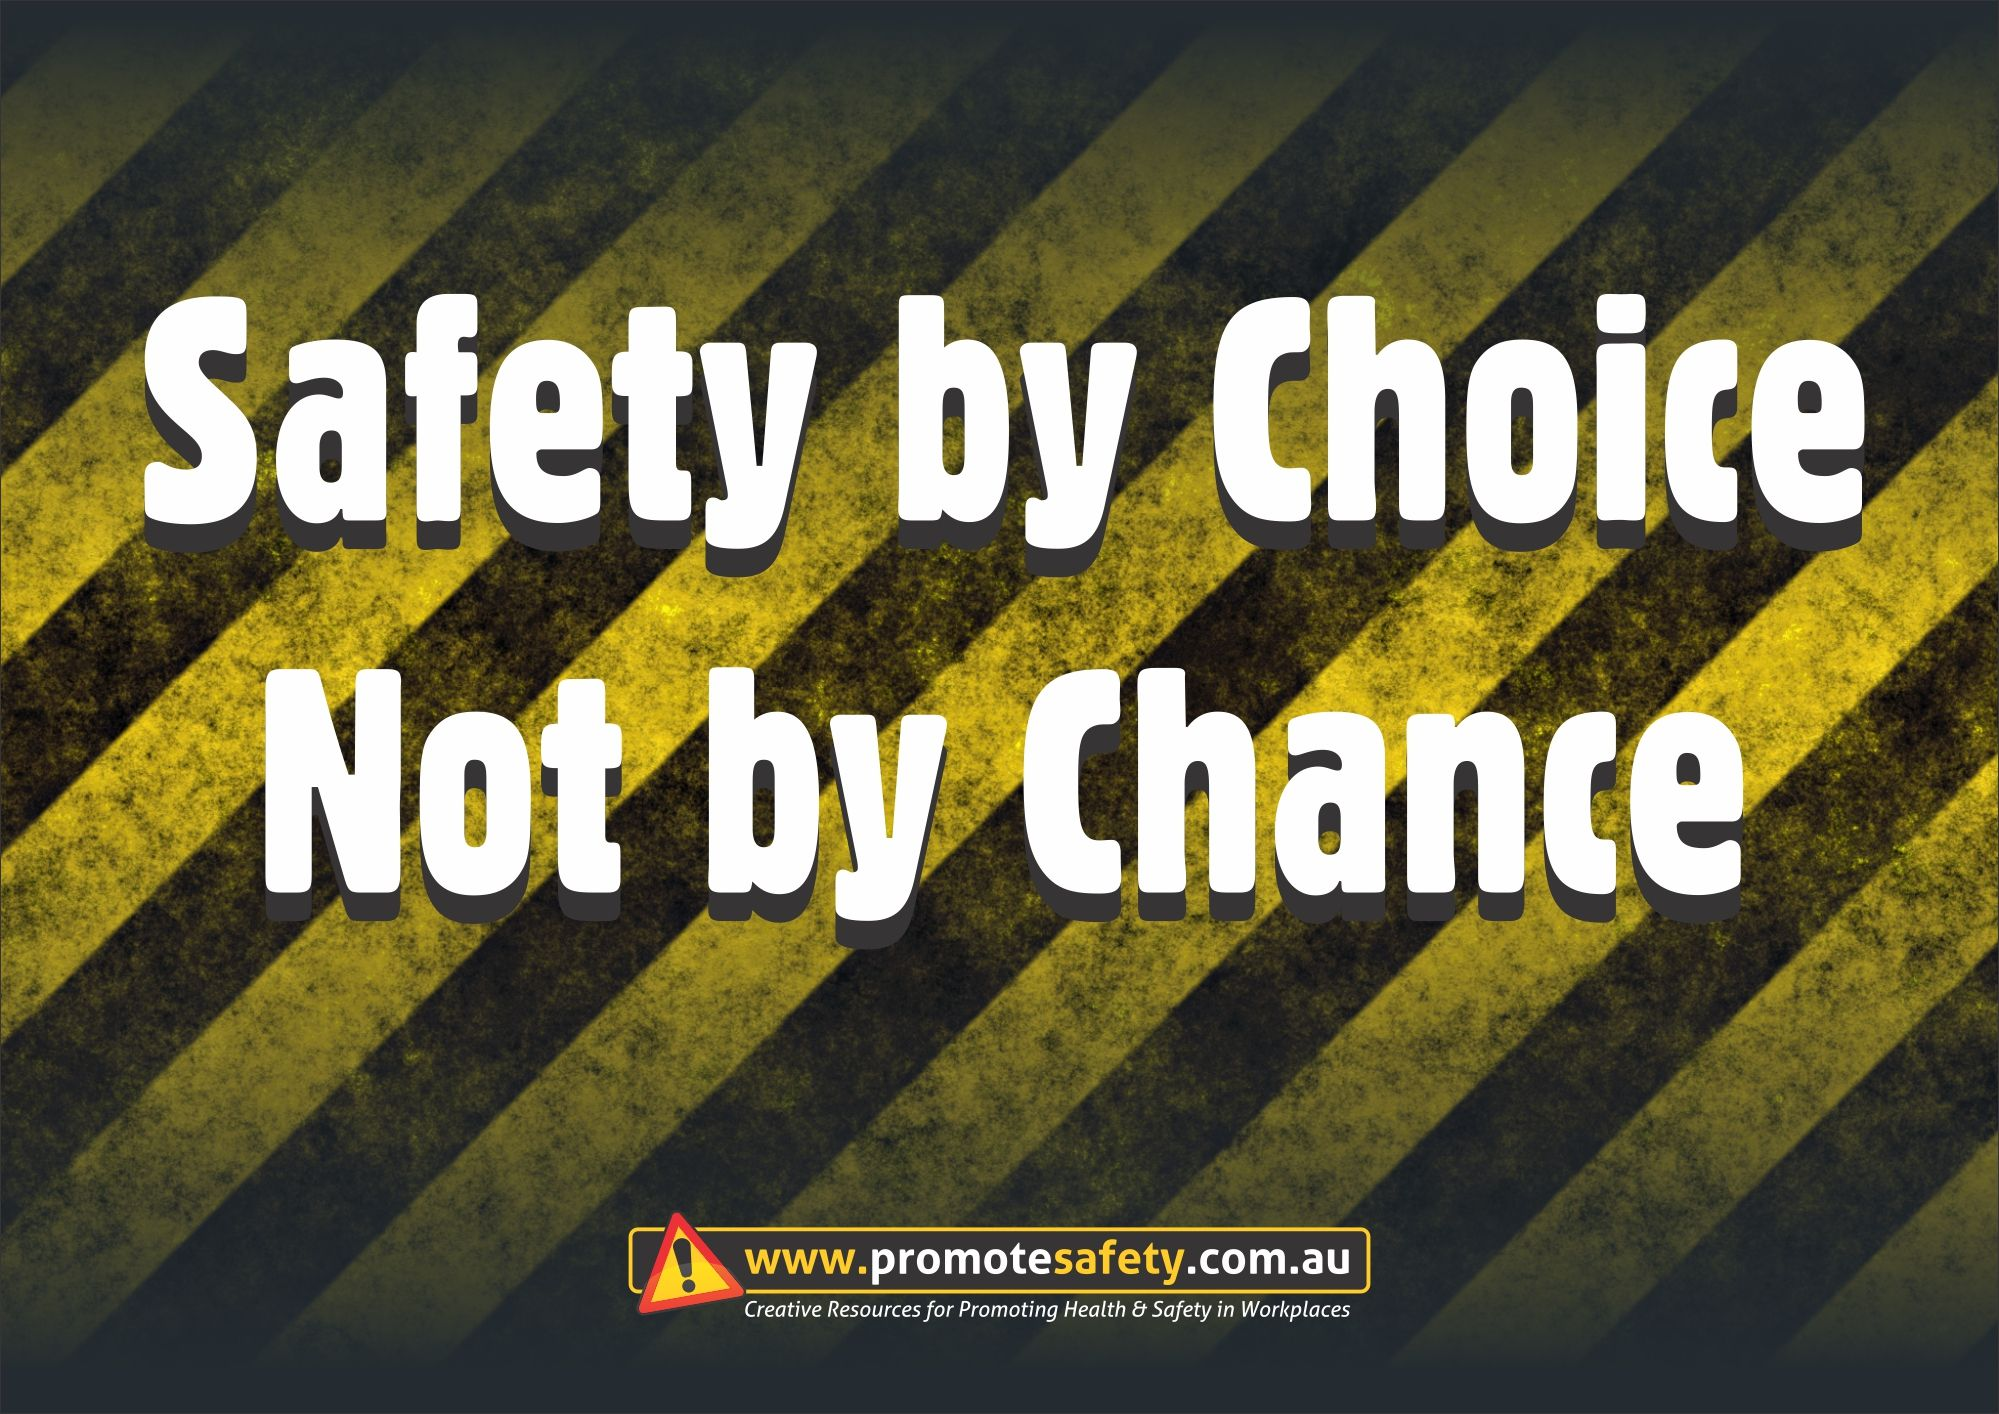 Workplace Safety And Health Slogan Safety By Choice Not By Chance Safety Quotes Safety Posters Safety Slogans